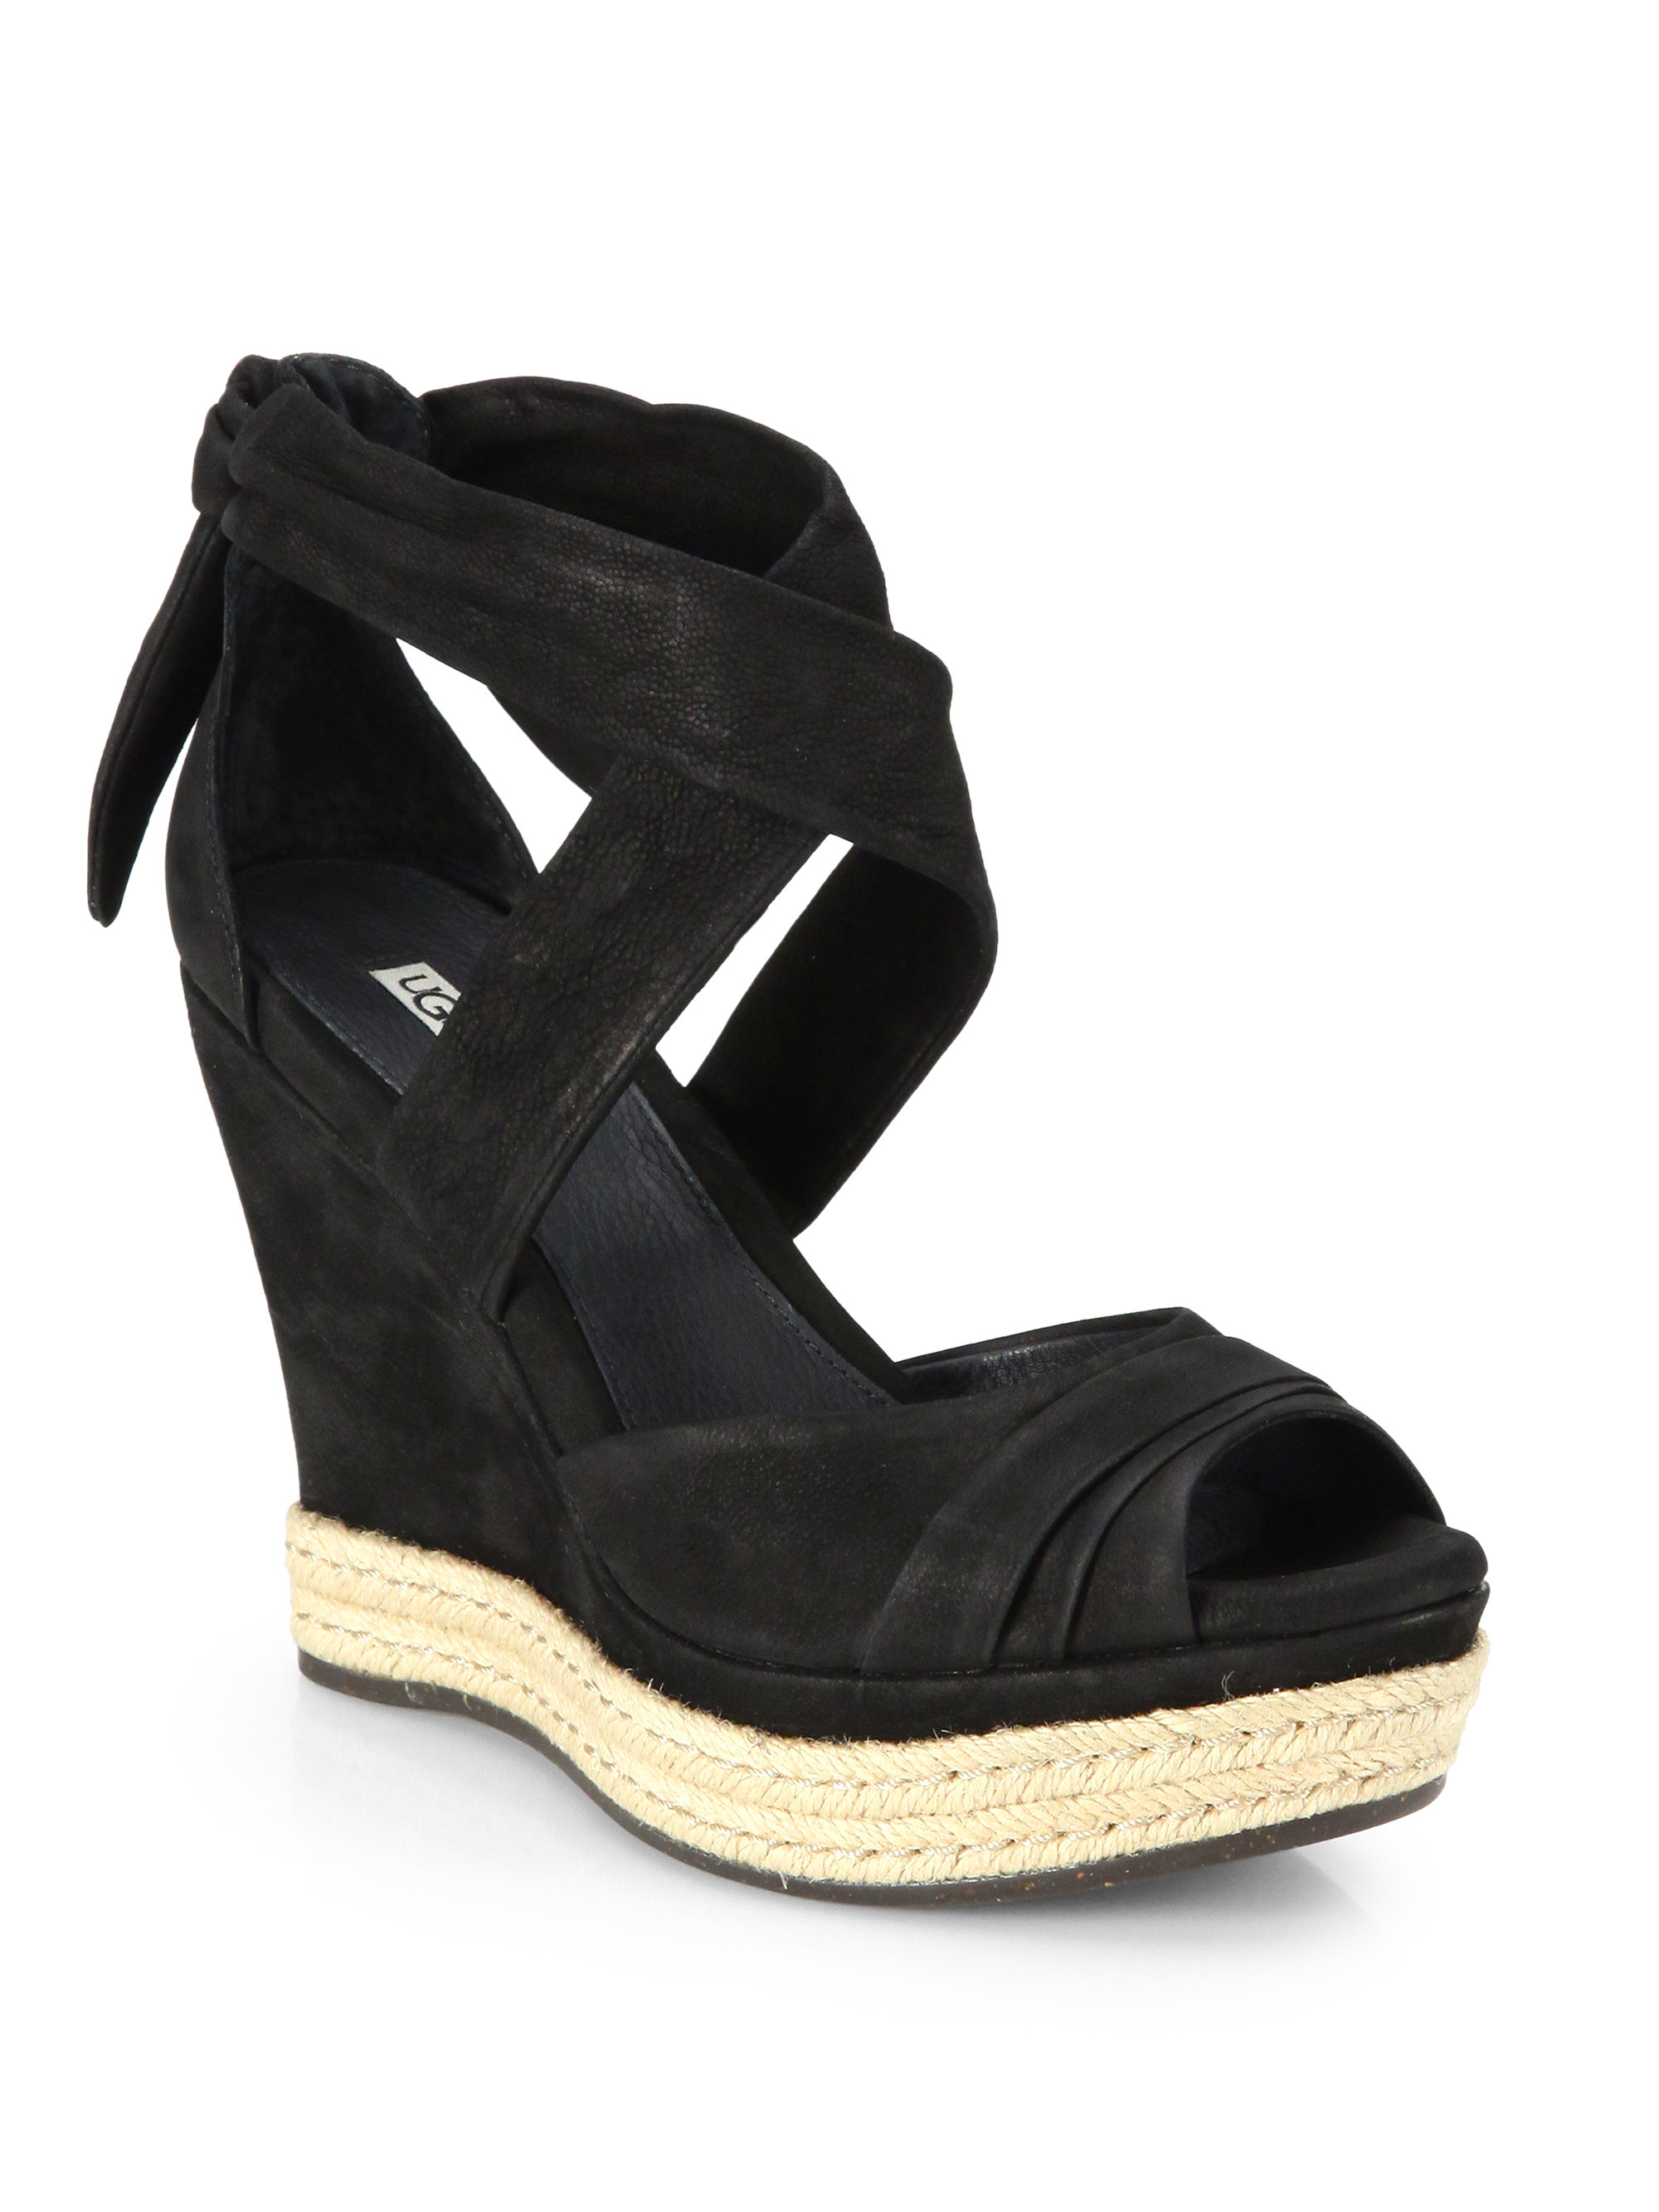 589e655dae6 Lyst - UGG Lucy Suede Tie-Up Wedge Sandals in Black